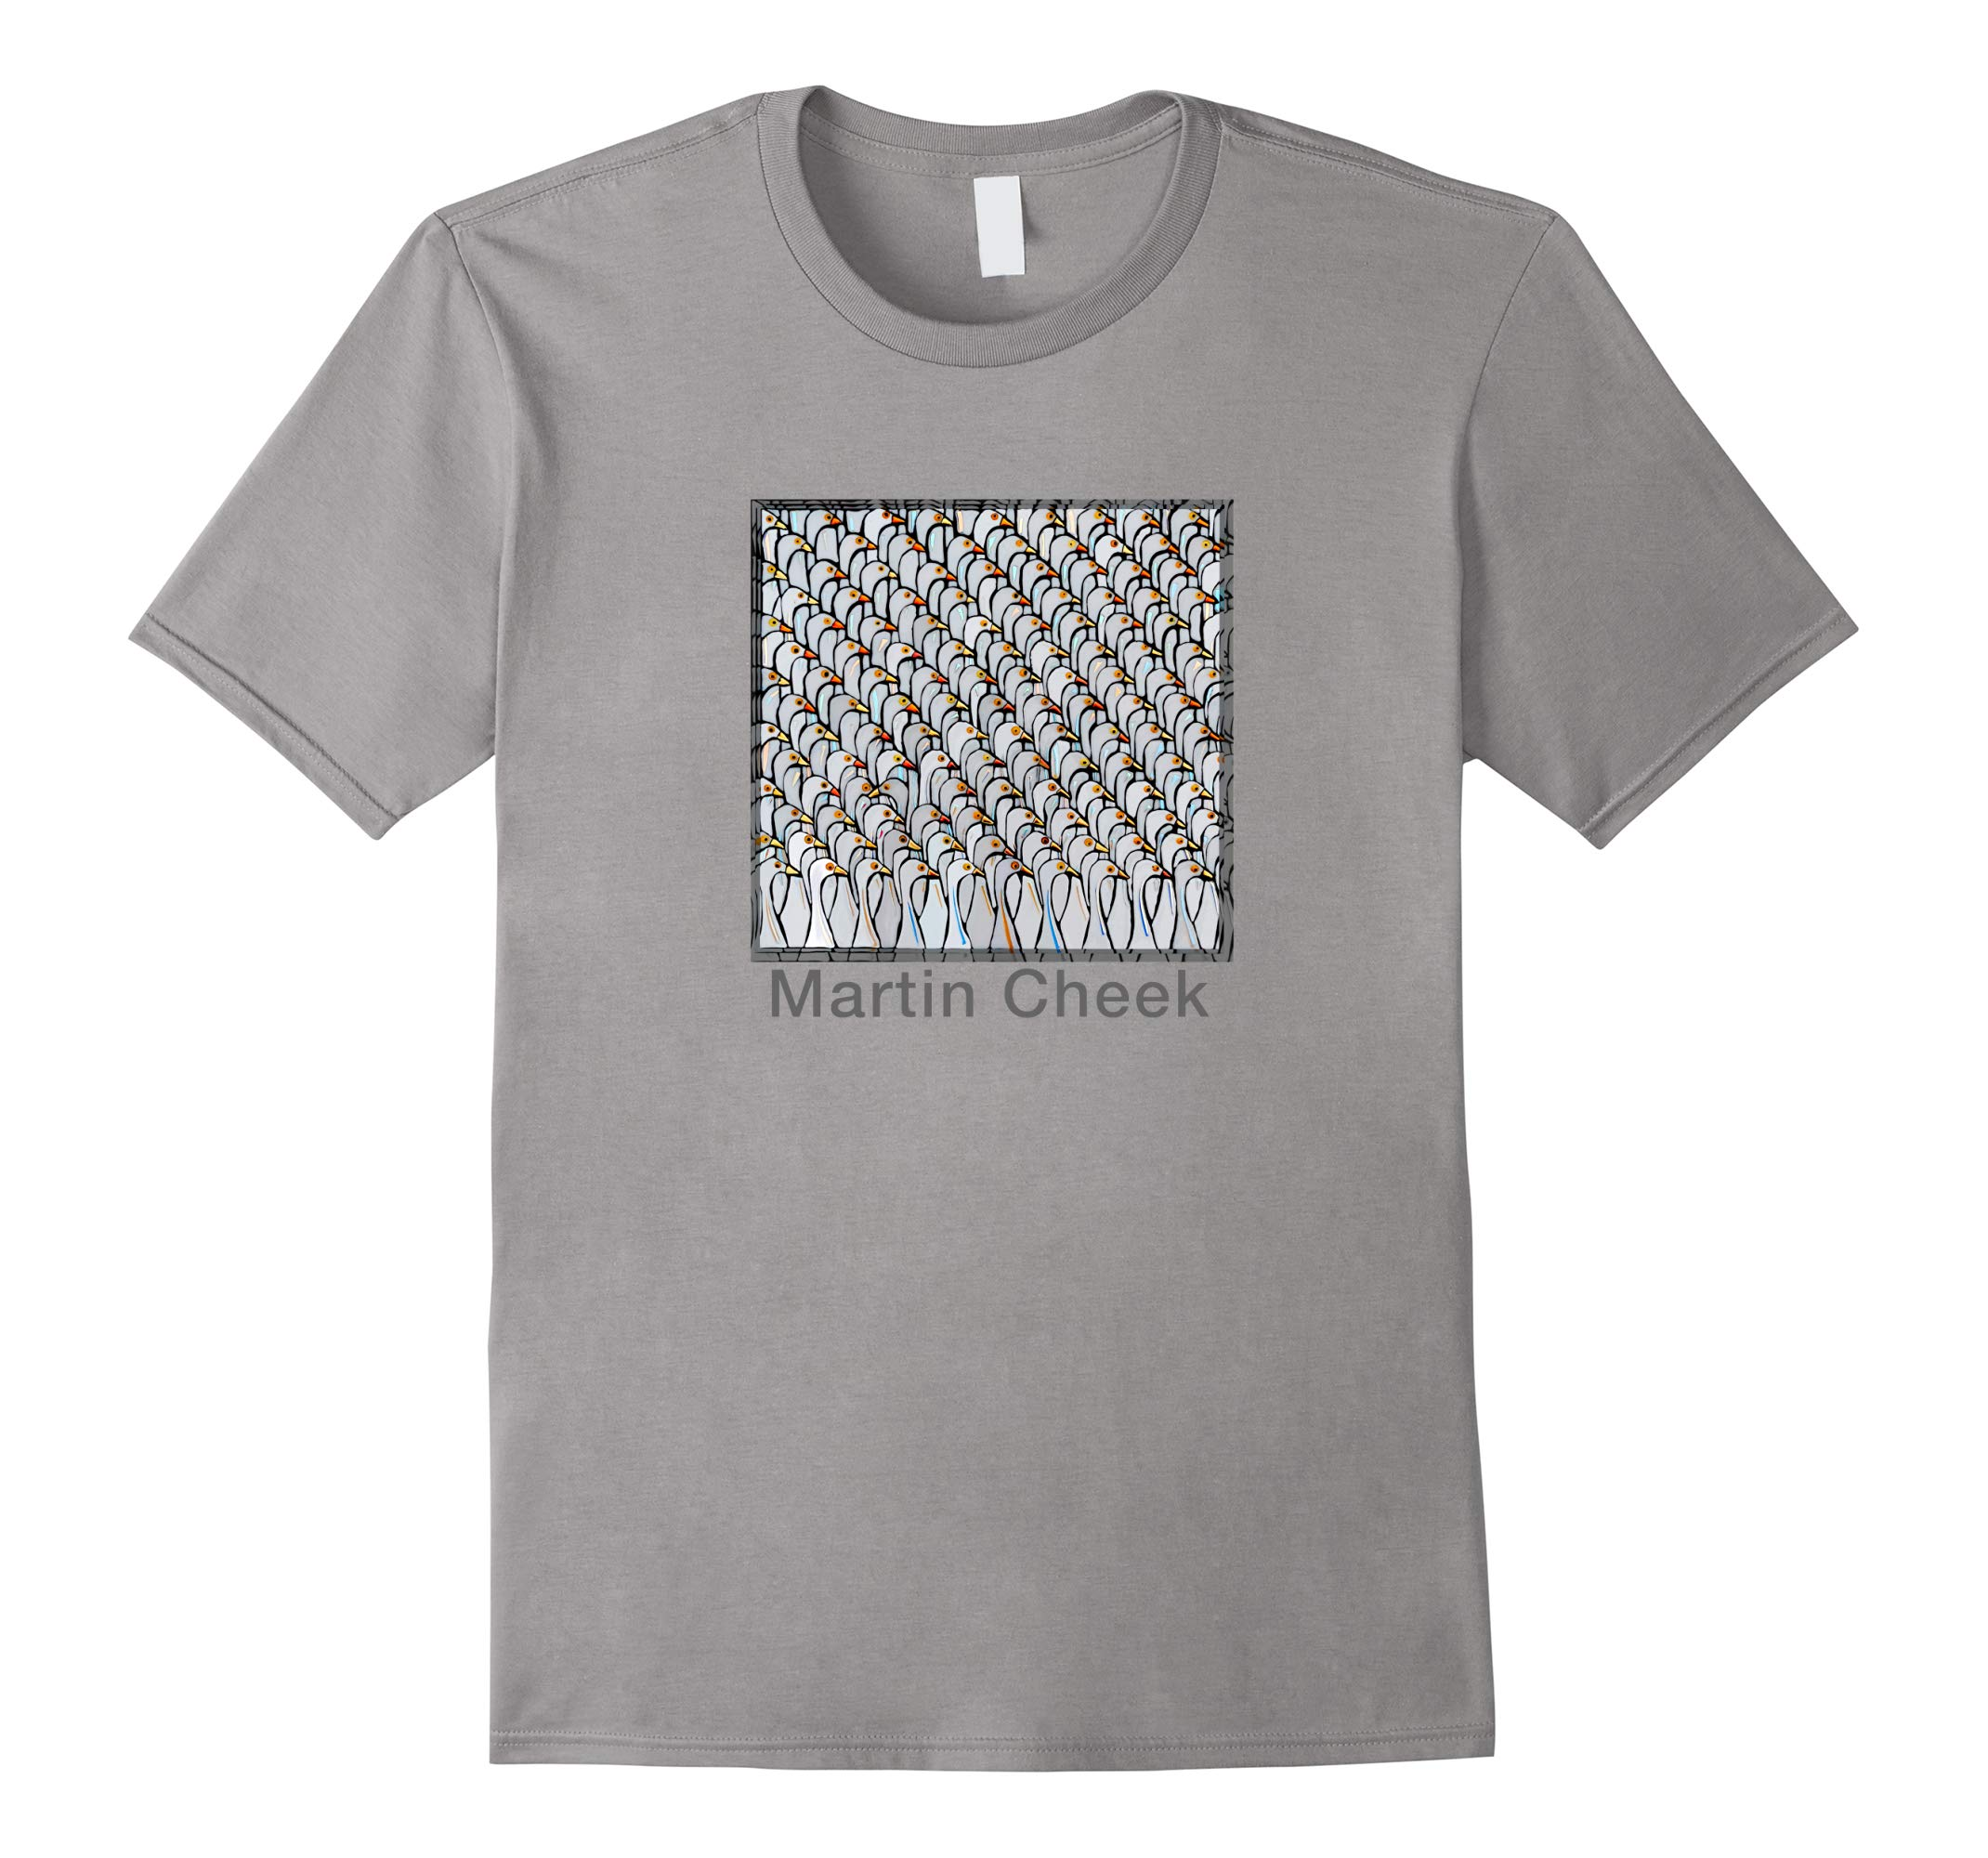 Glass Mosaic Puzzle Geese Shirt for Fun and Education-RT